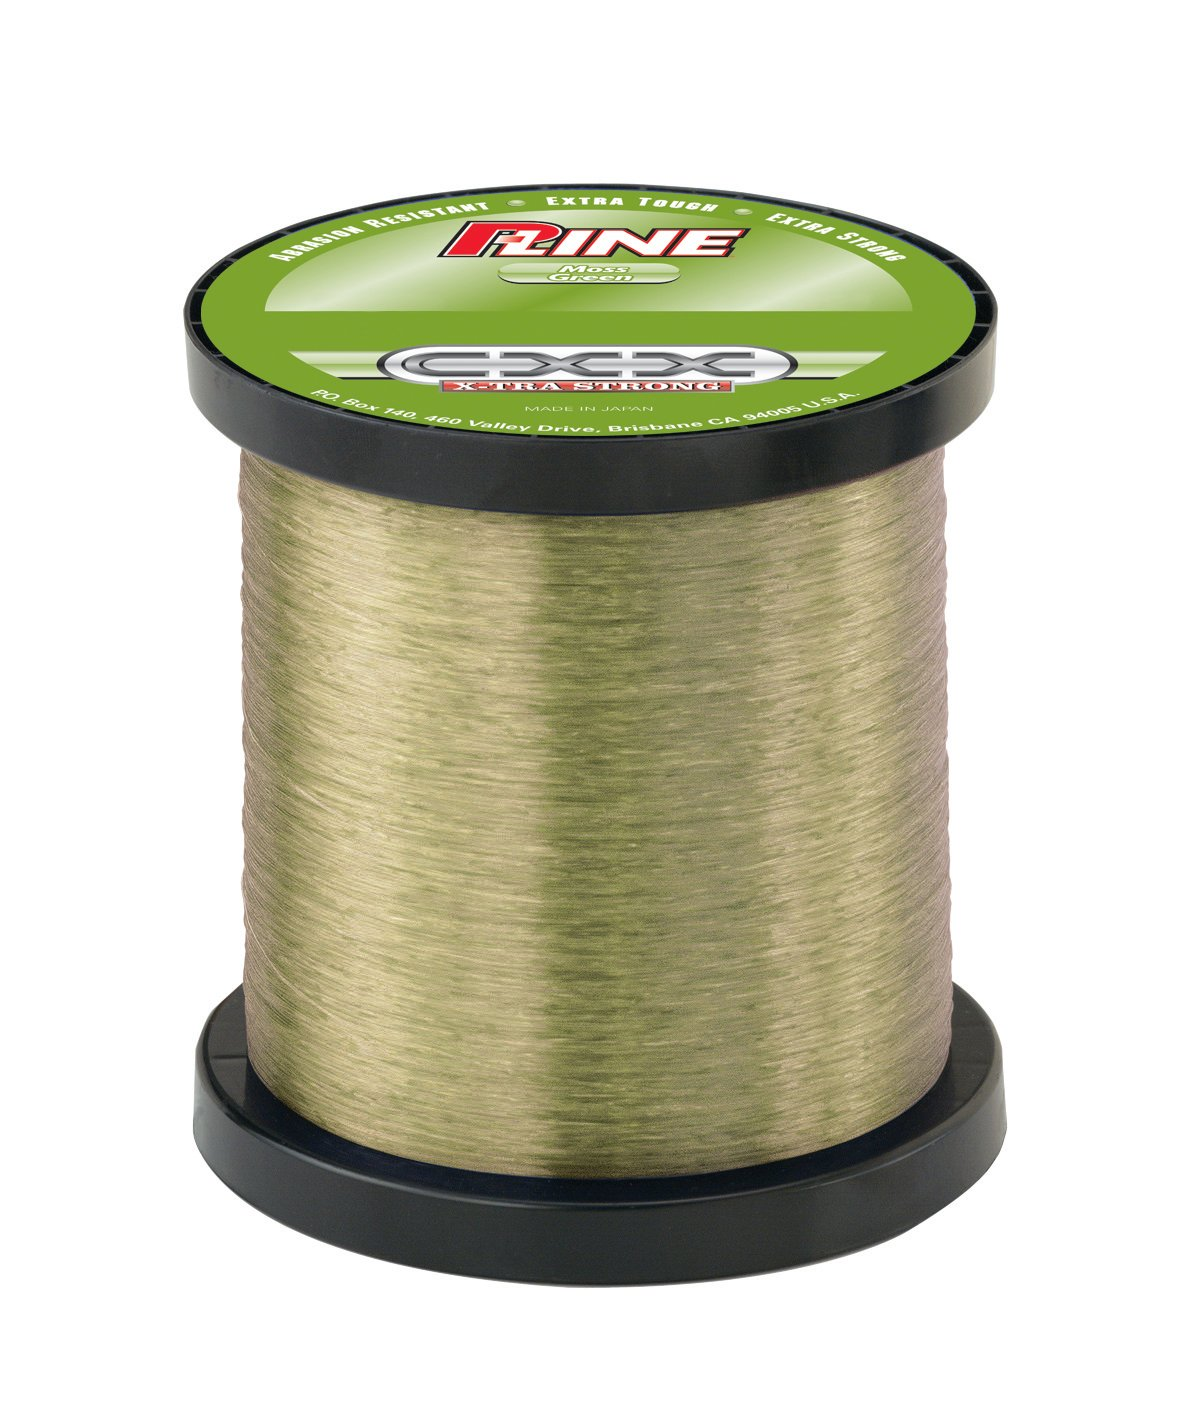 P-Line CXX-Xtra Strong Moss Green Fishing Line Bulk Spool